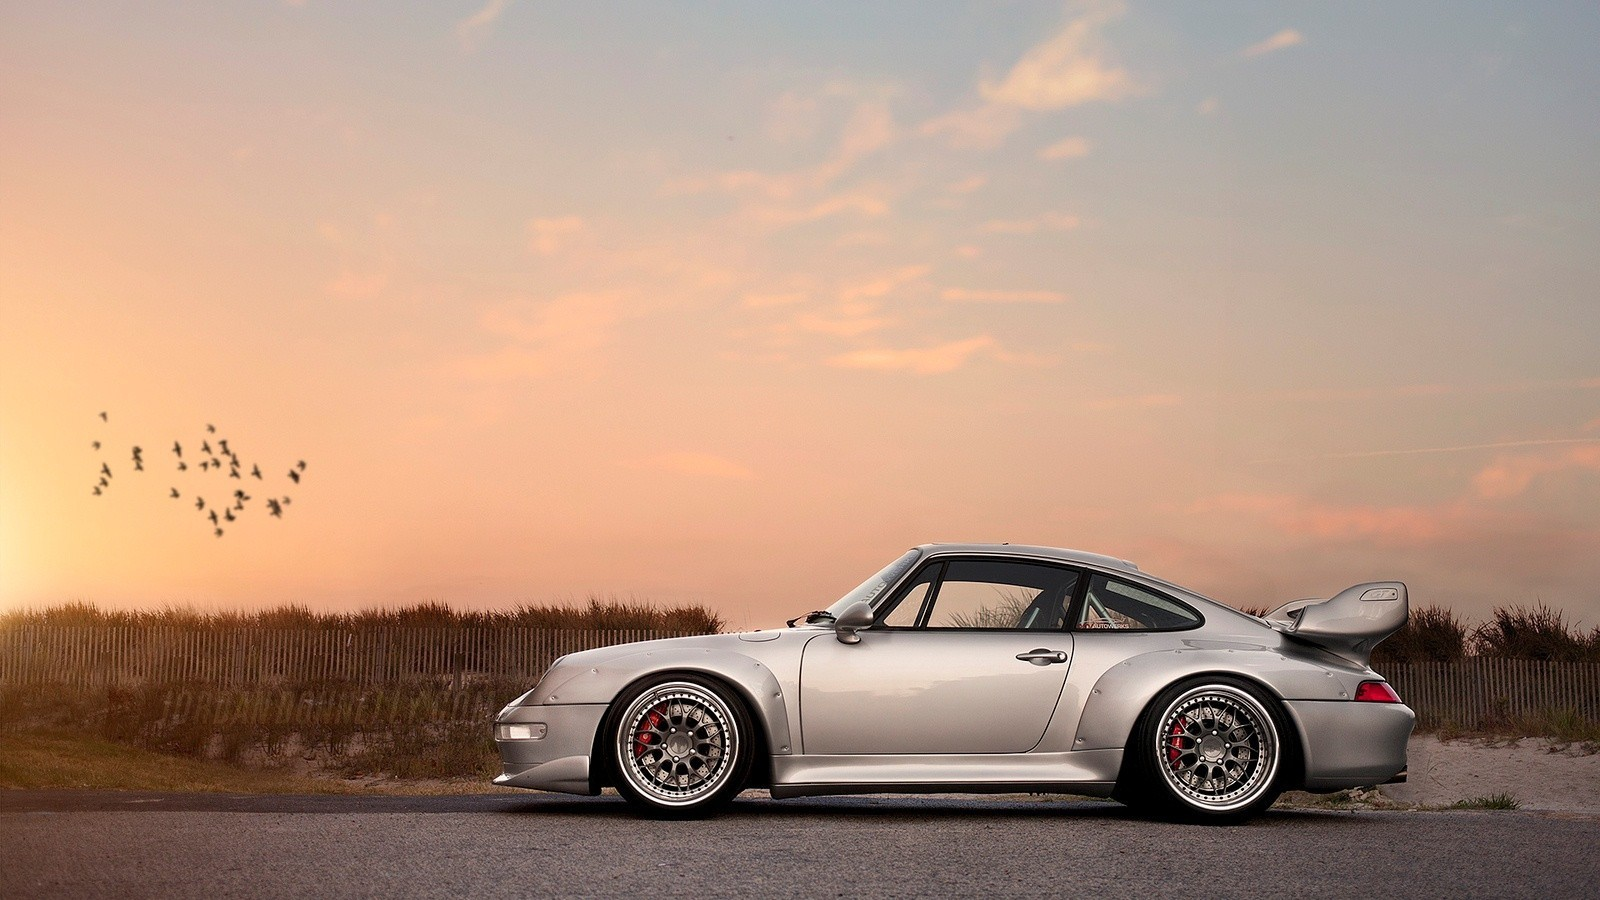 porsche 911 car, hd cars, 4k wallpapers, images, backgrounds, photos